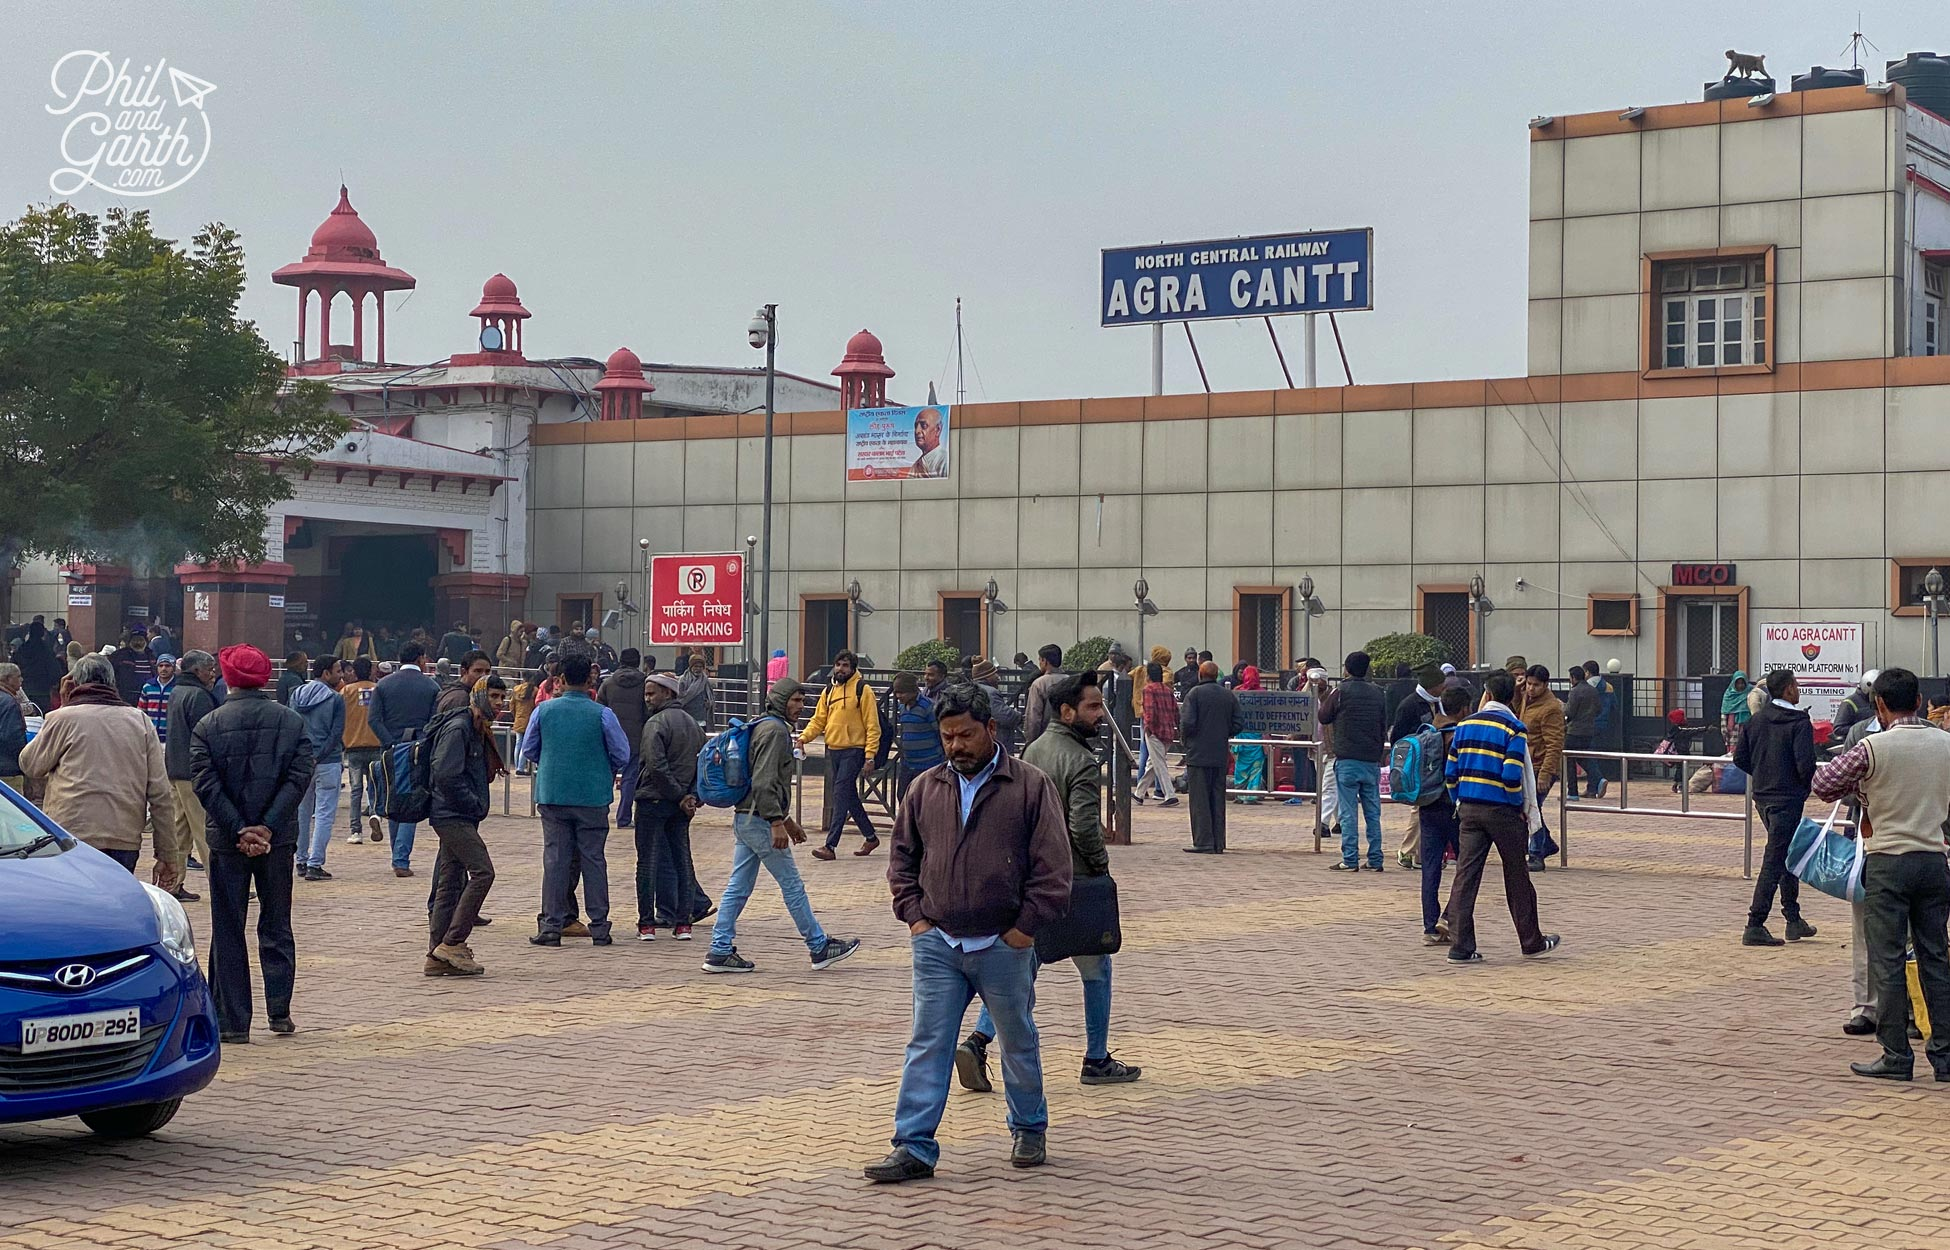 Agra attracts huge numbers of domestic and foreign tourists every year